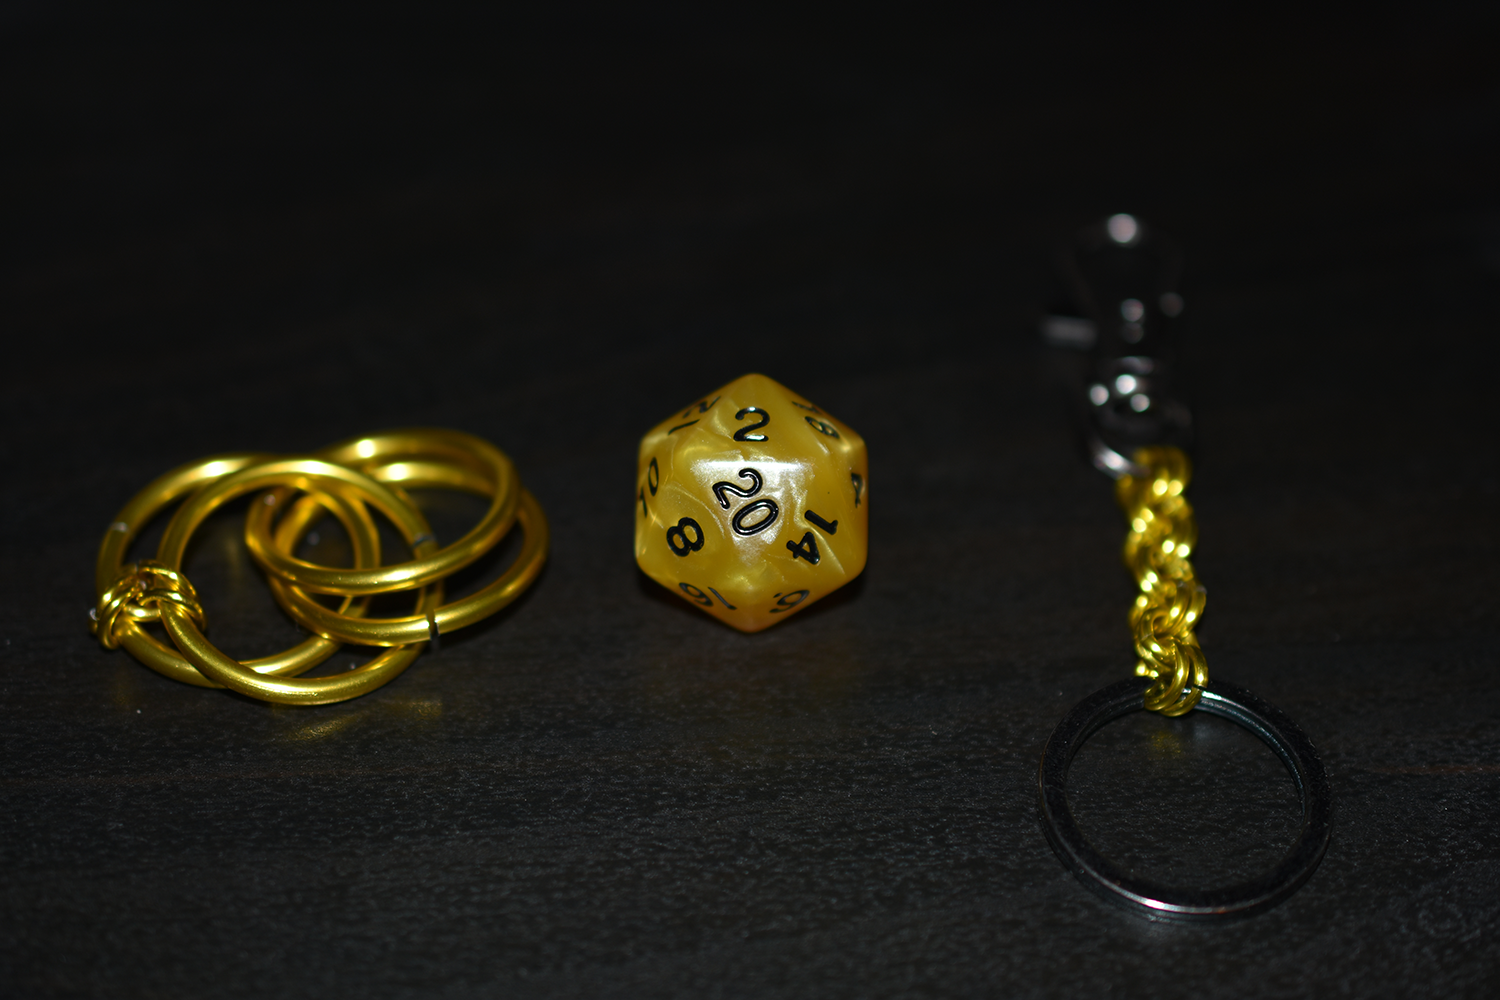 Step 1 - Gather all pieces for the keychain and lay the dice cage out as shown.